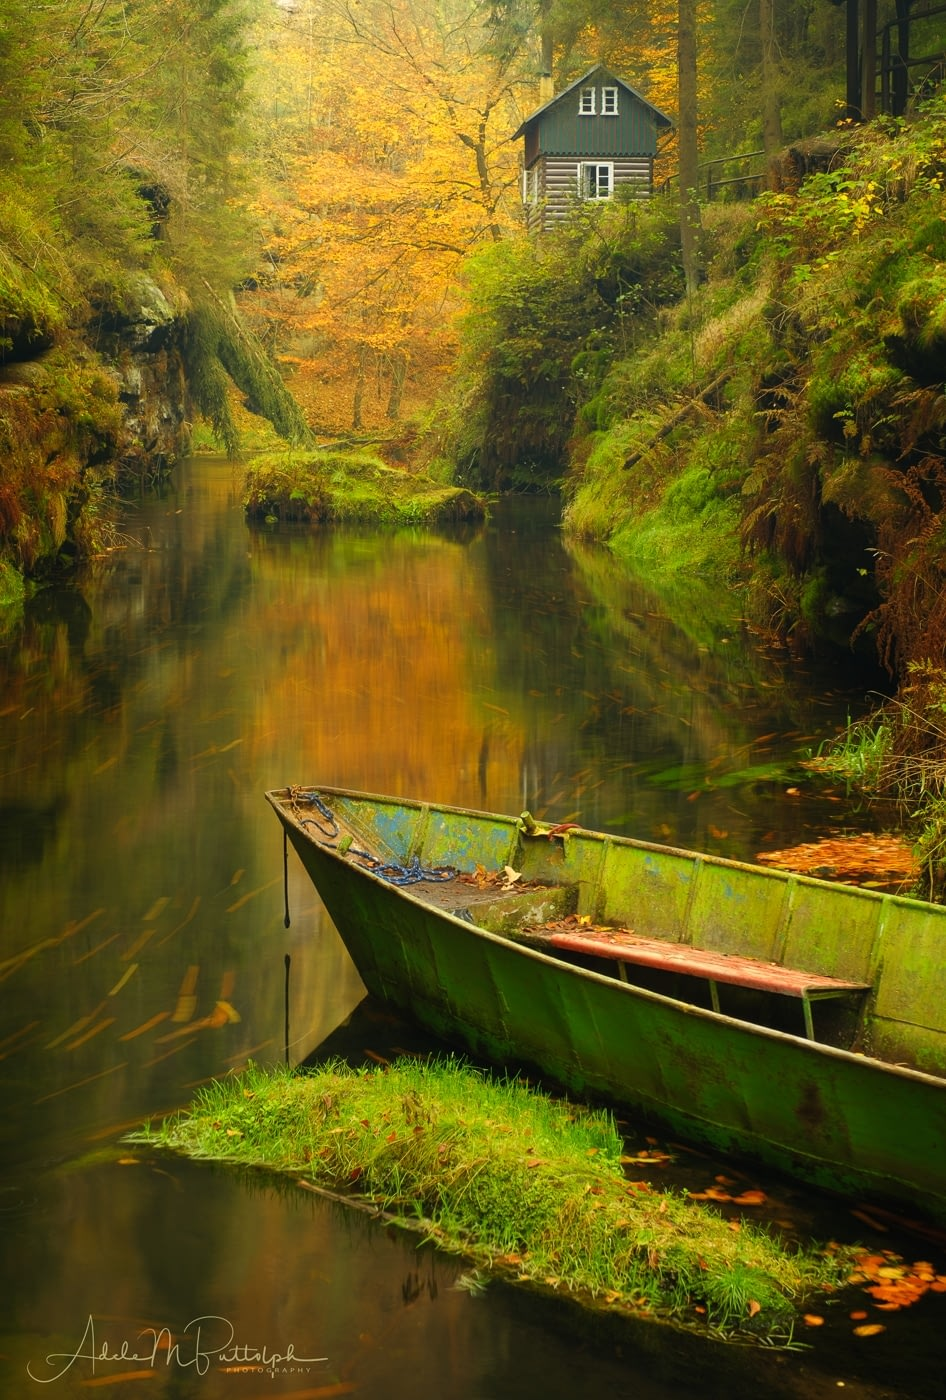 Kamenice River Gorge by Adele Buttolph